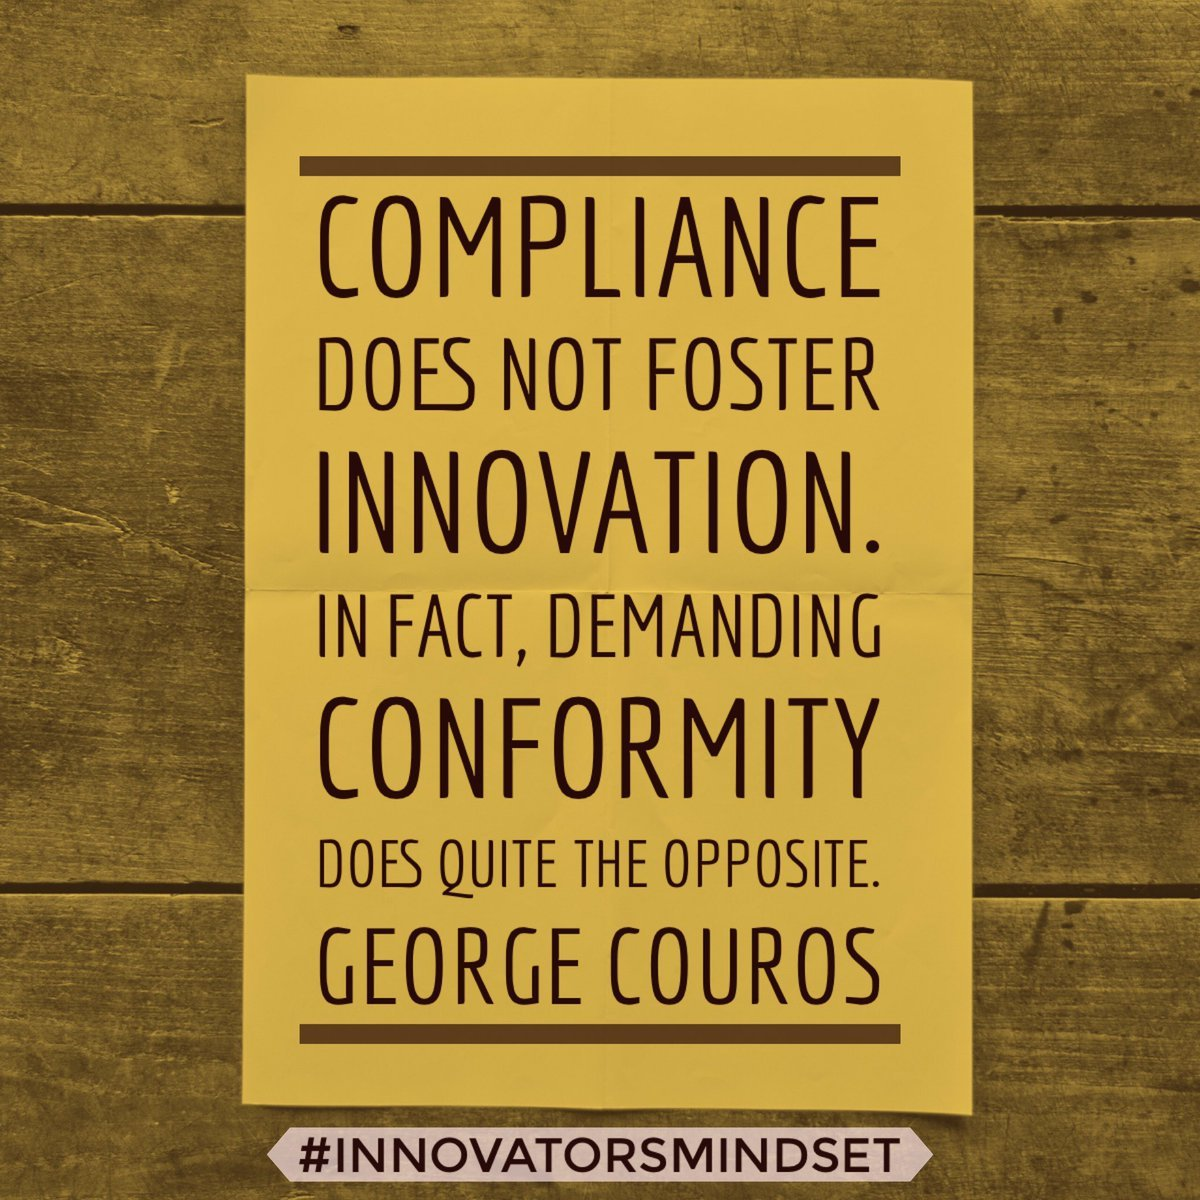 Compliance eats innovation for breakfast. So, what are you doing to prevent conformity from dominating your school? #EdChat https://t.co/zuq7lPl9Q0